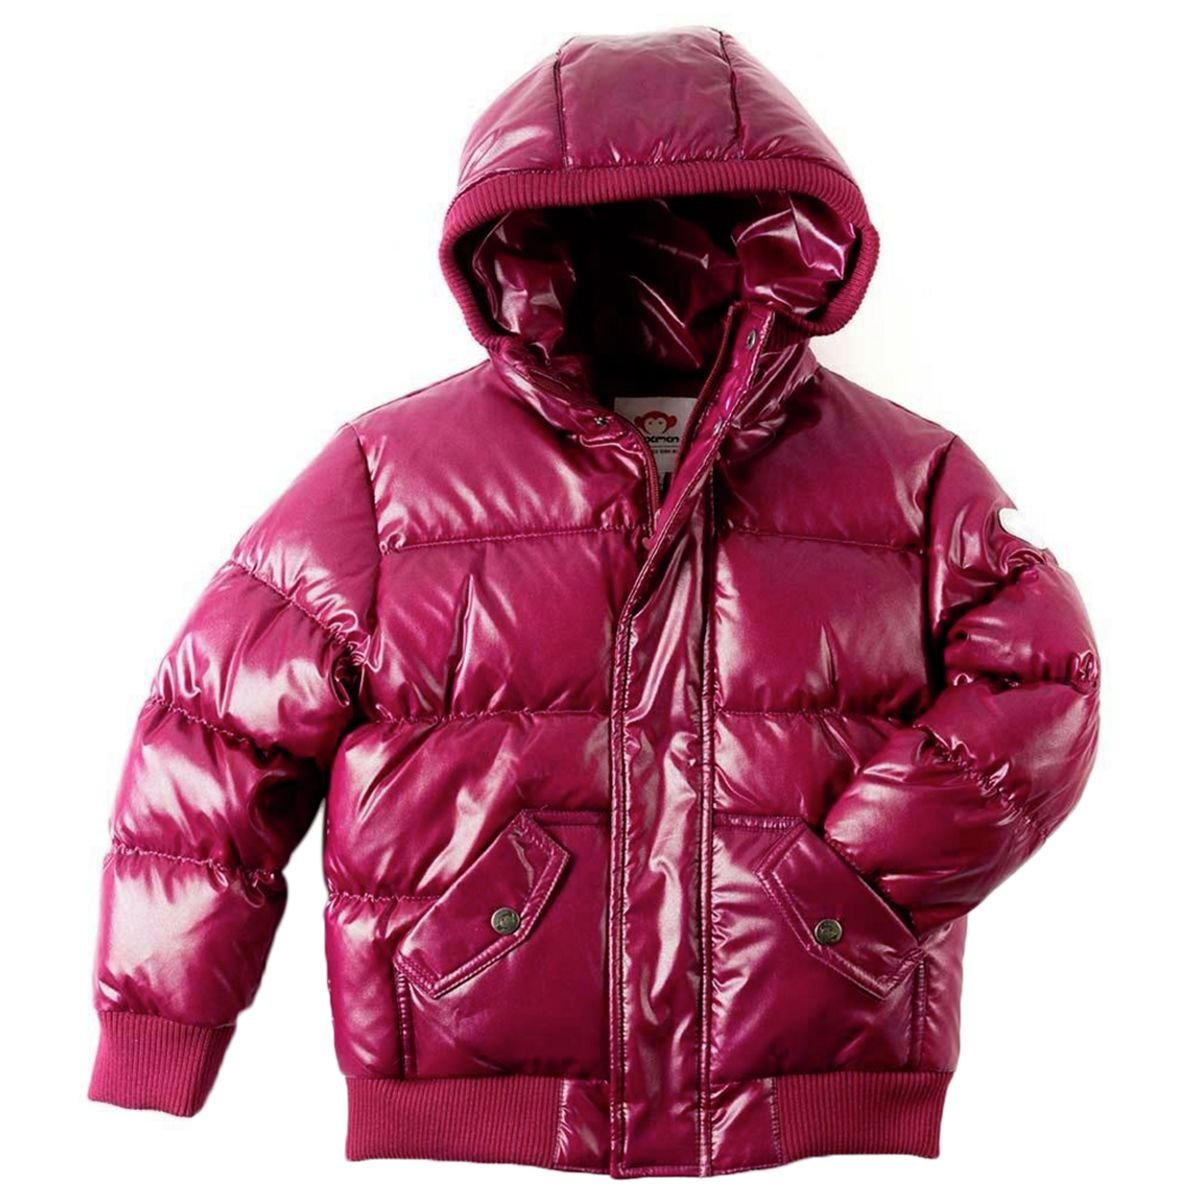 Appaman Girls' Puffy Coat, Deep Fuchsia Sparkle, 2T